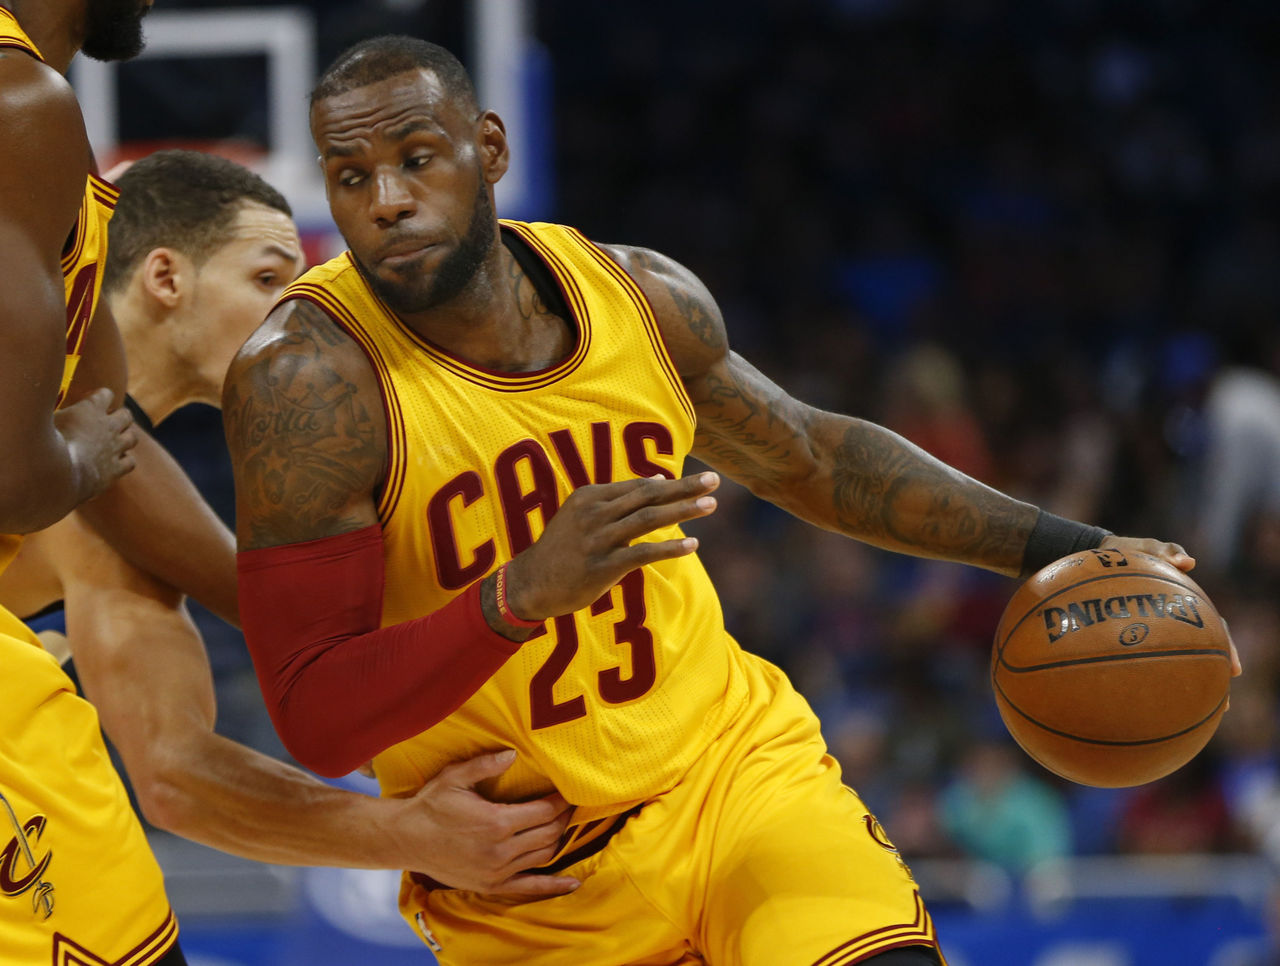 Cropped_2017-03-12t010040z_2043816759_nocid_rtrmadp_3_nba-cleveland-cavaliers-at-orlando-magic